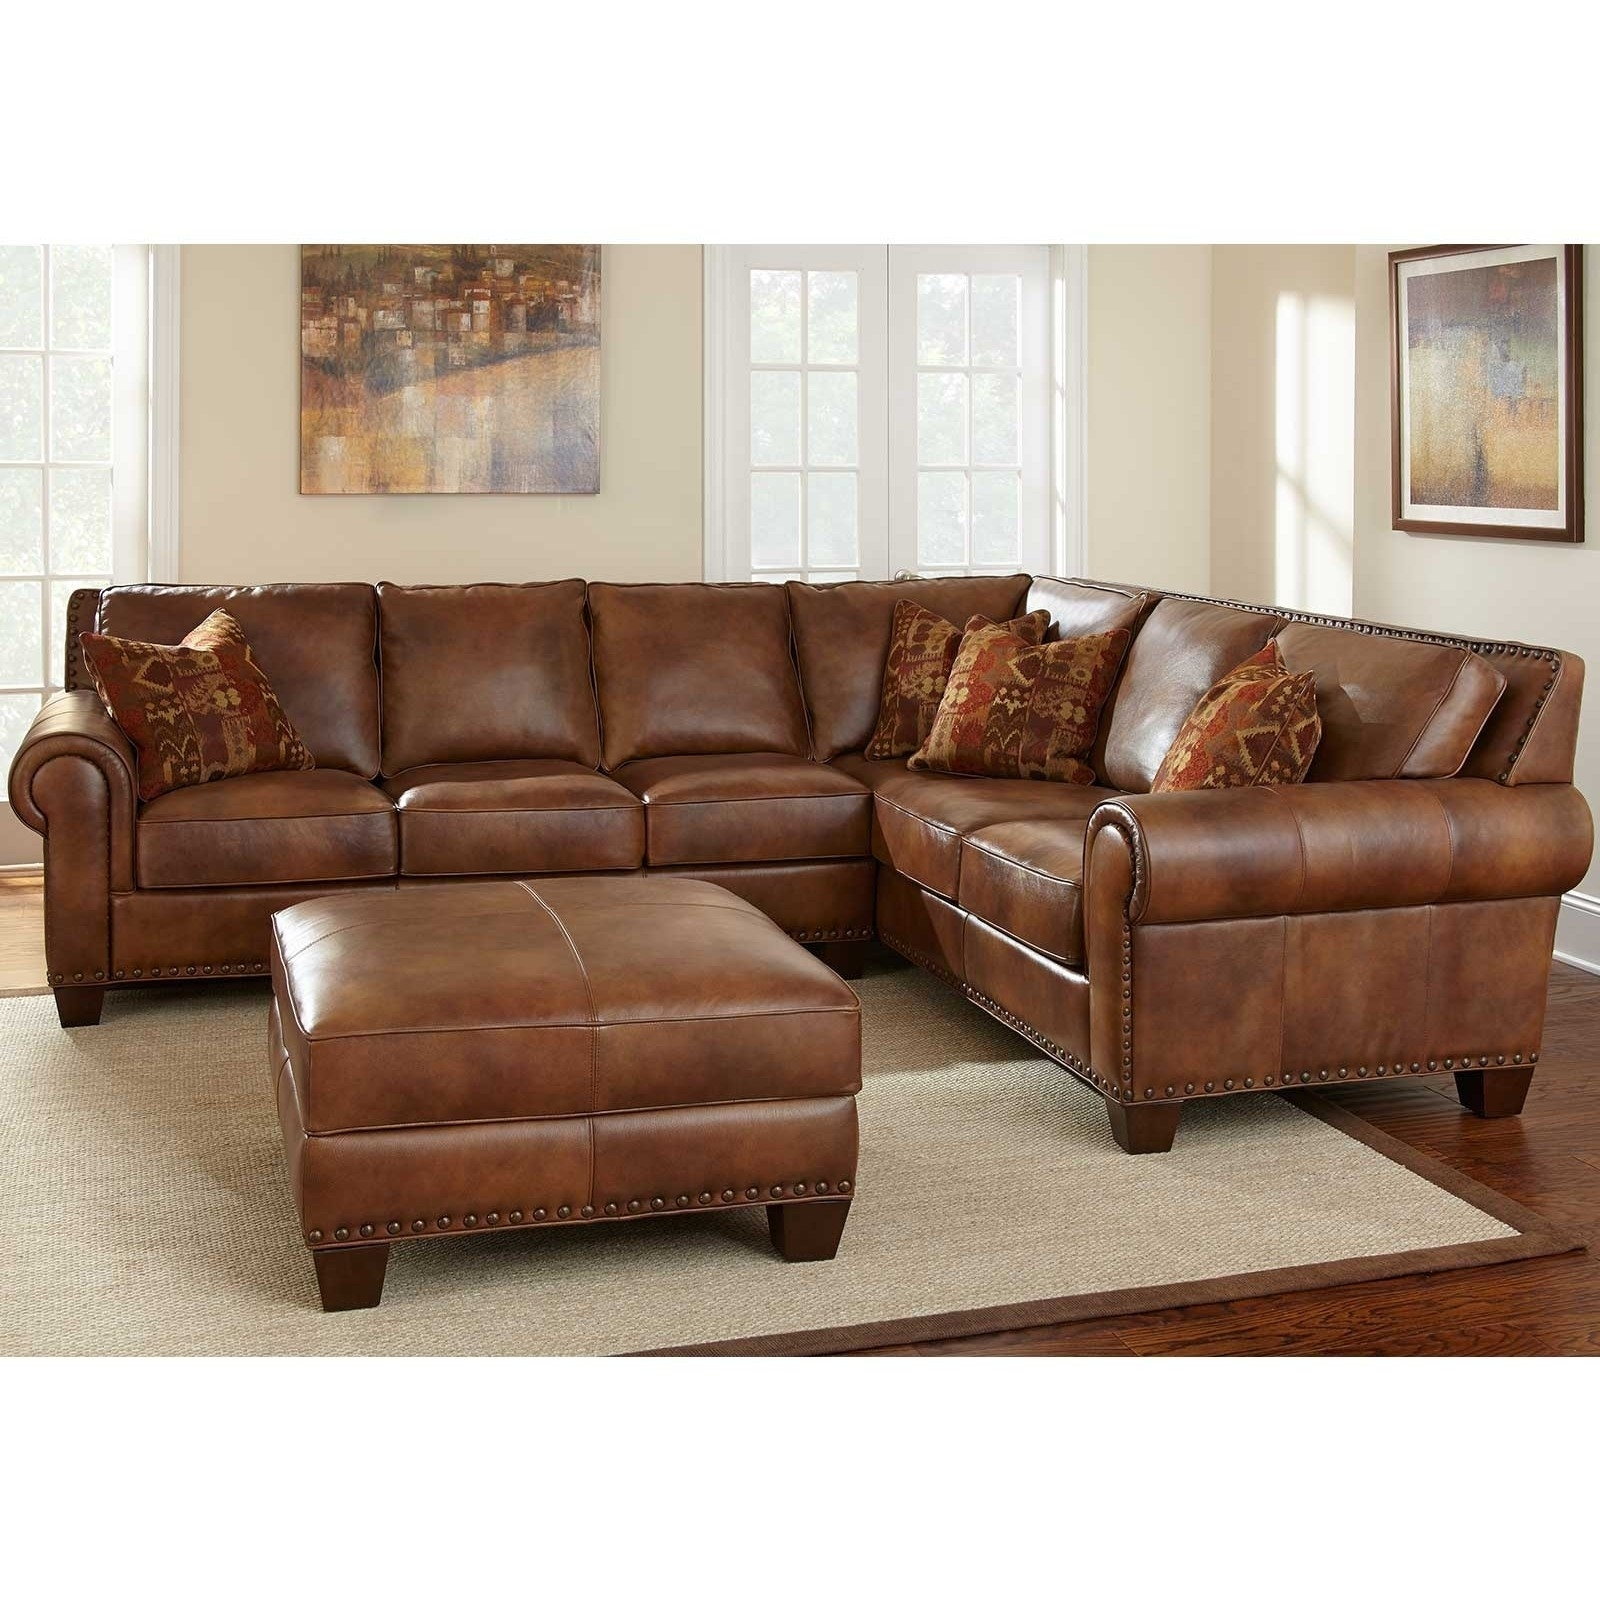 Sectional Sofa Design: High End Leather Sectional Sofas For Sale Within High End Leather Sectional Sofas (View 5 of 10)